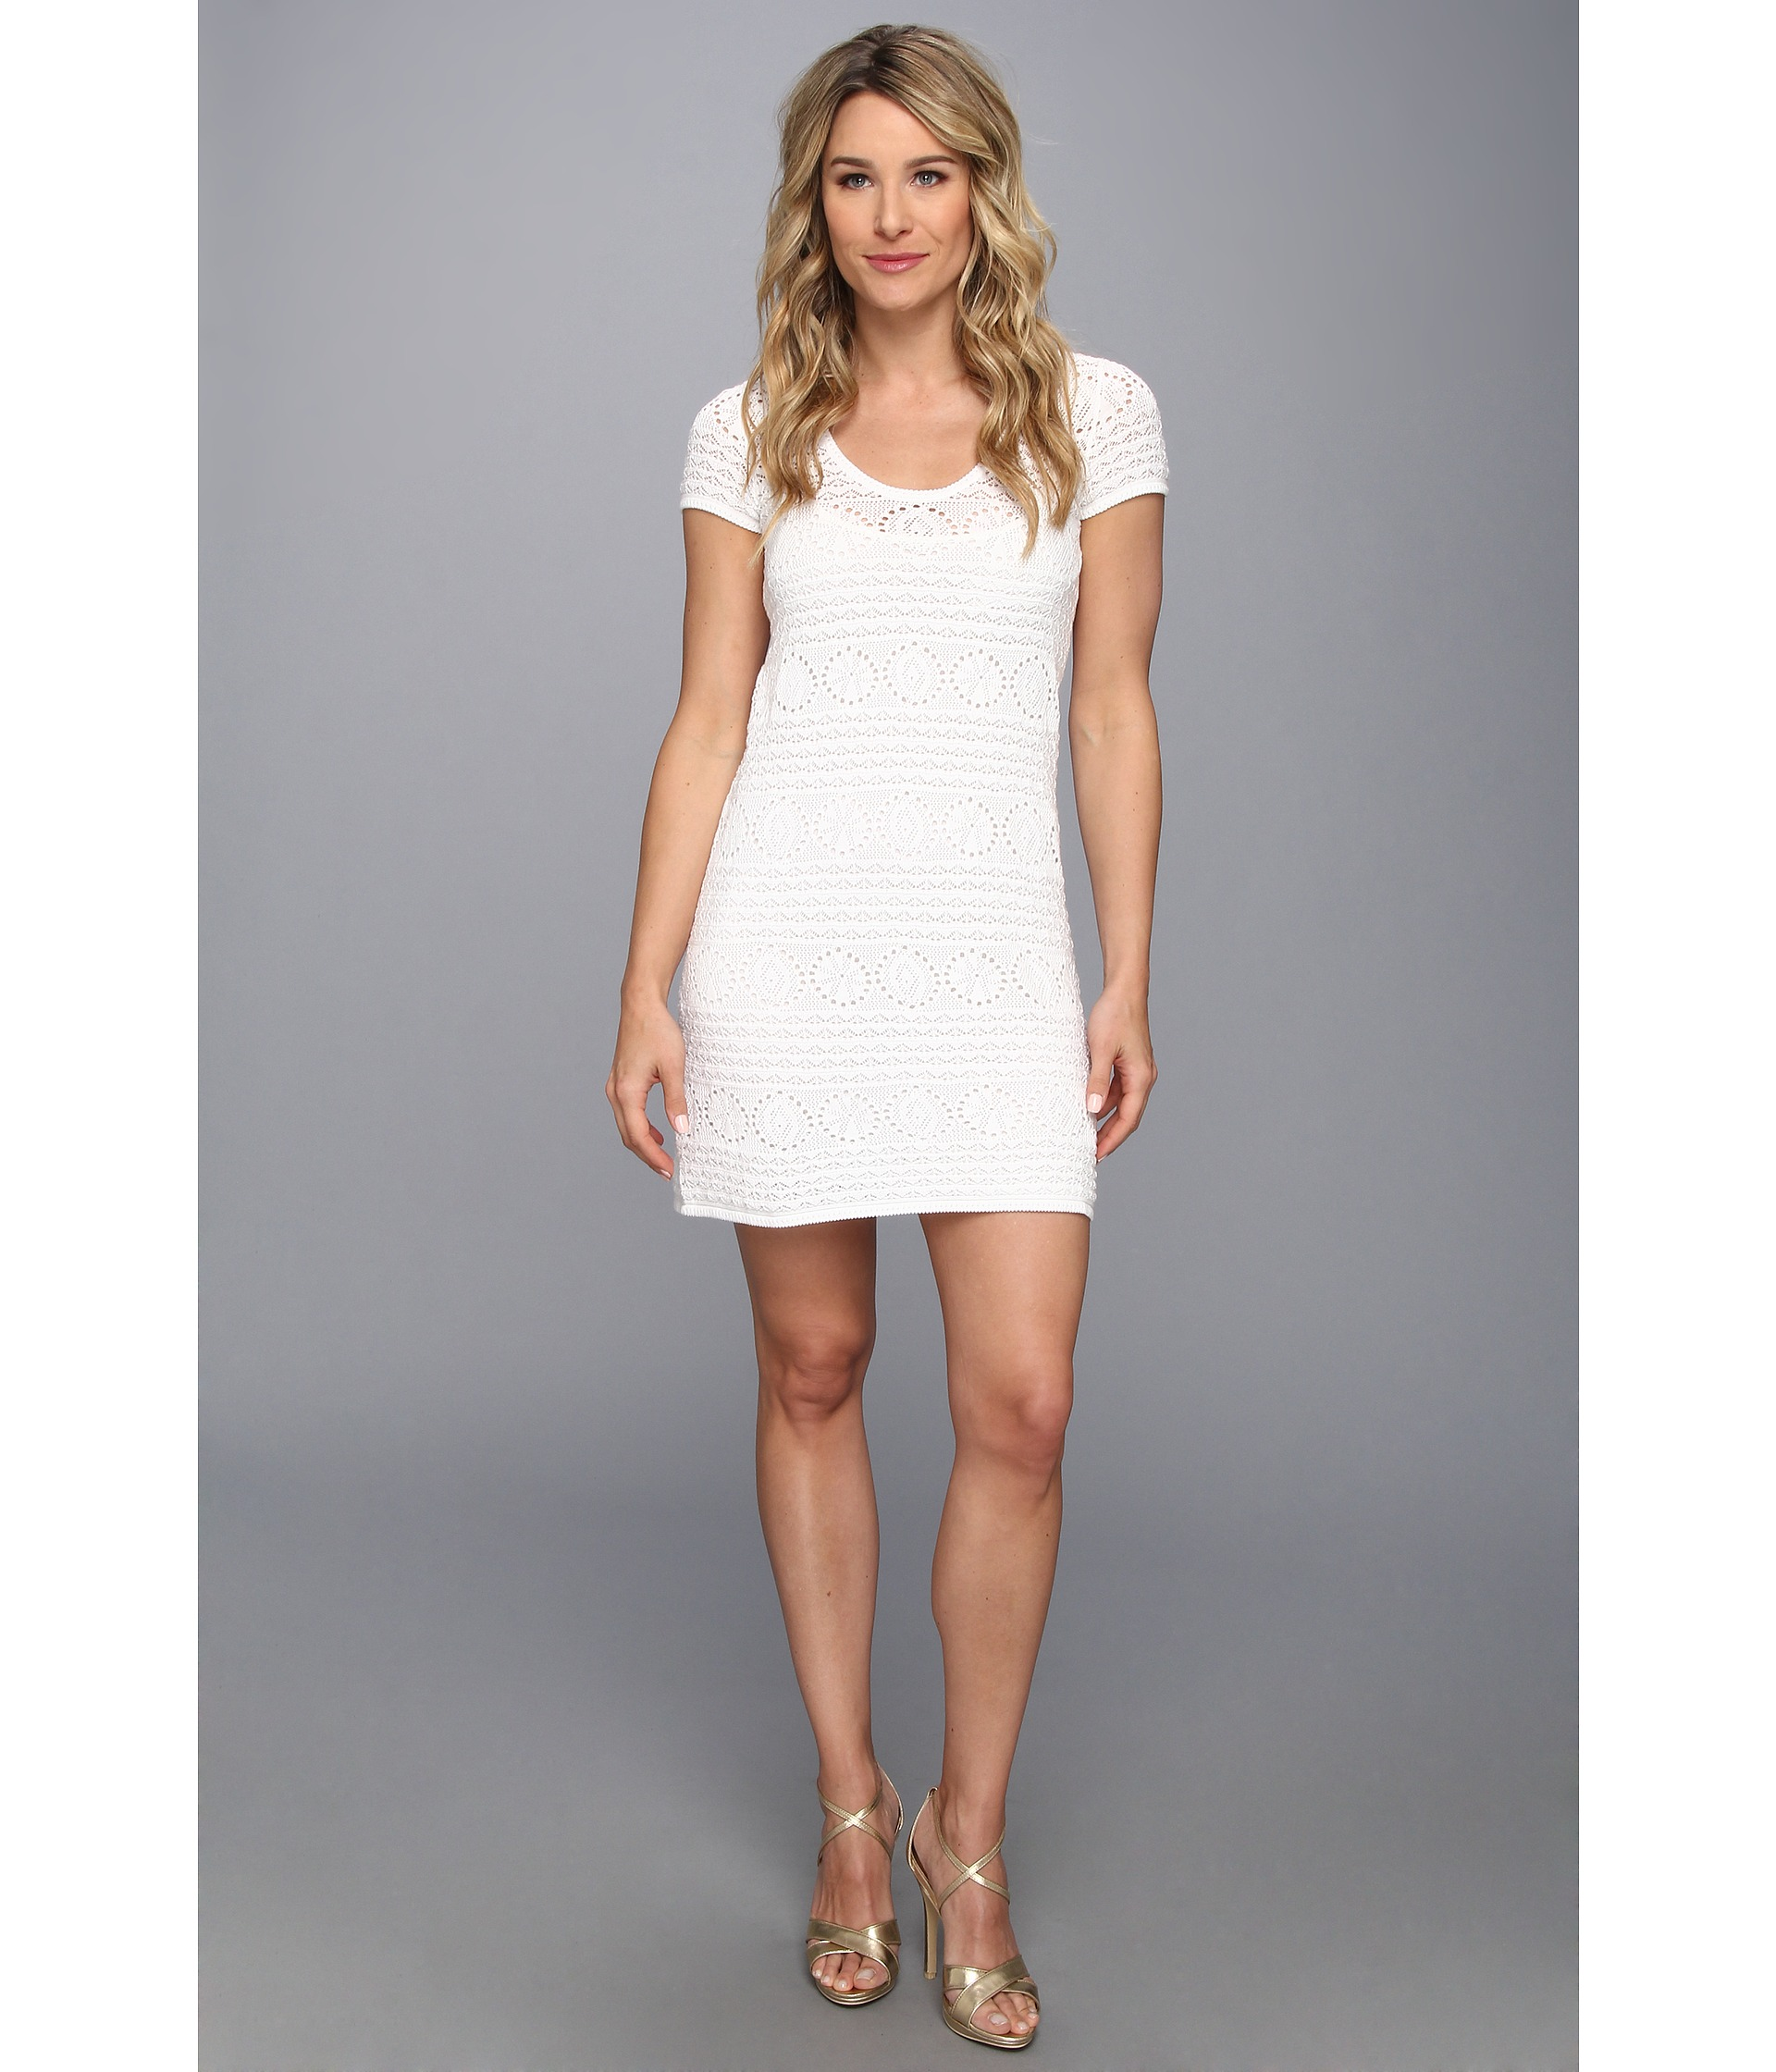 Lilly Pulitzer Sale Dresses Clearance Lilly Pulitzer Paulette